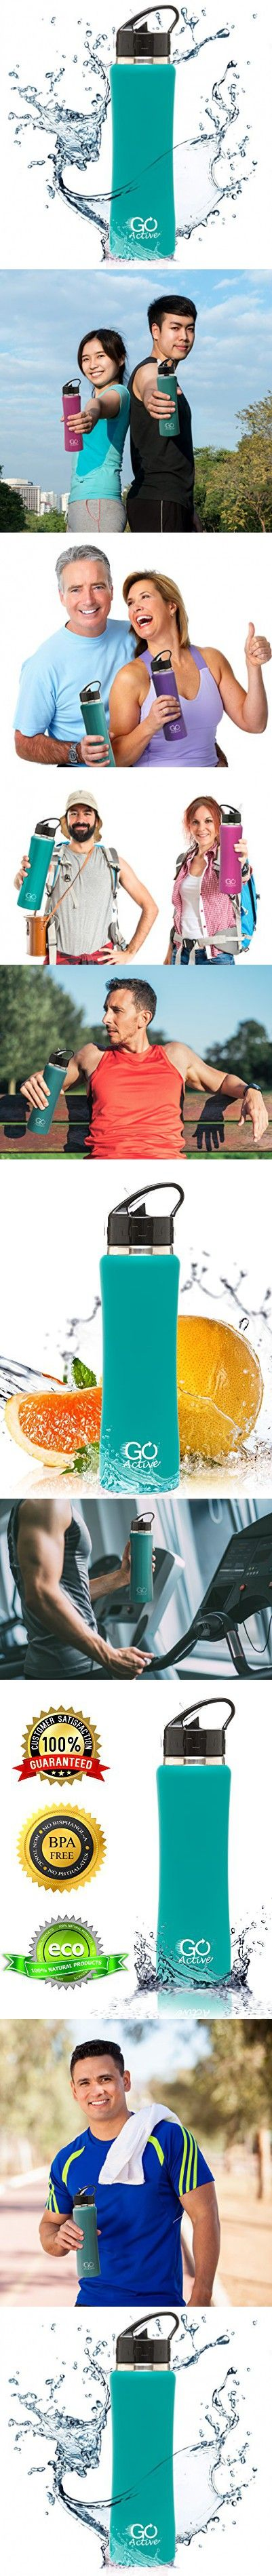 Stainless Steel Insulated Water Bottle with flip straw and sweat-proof rubber grip. H2O Sports drinking bottle is BPA Free, Eco Friendly, Good for Kids, and keeps ice over 24 hours